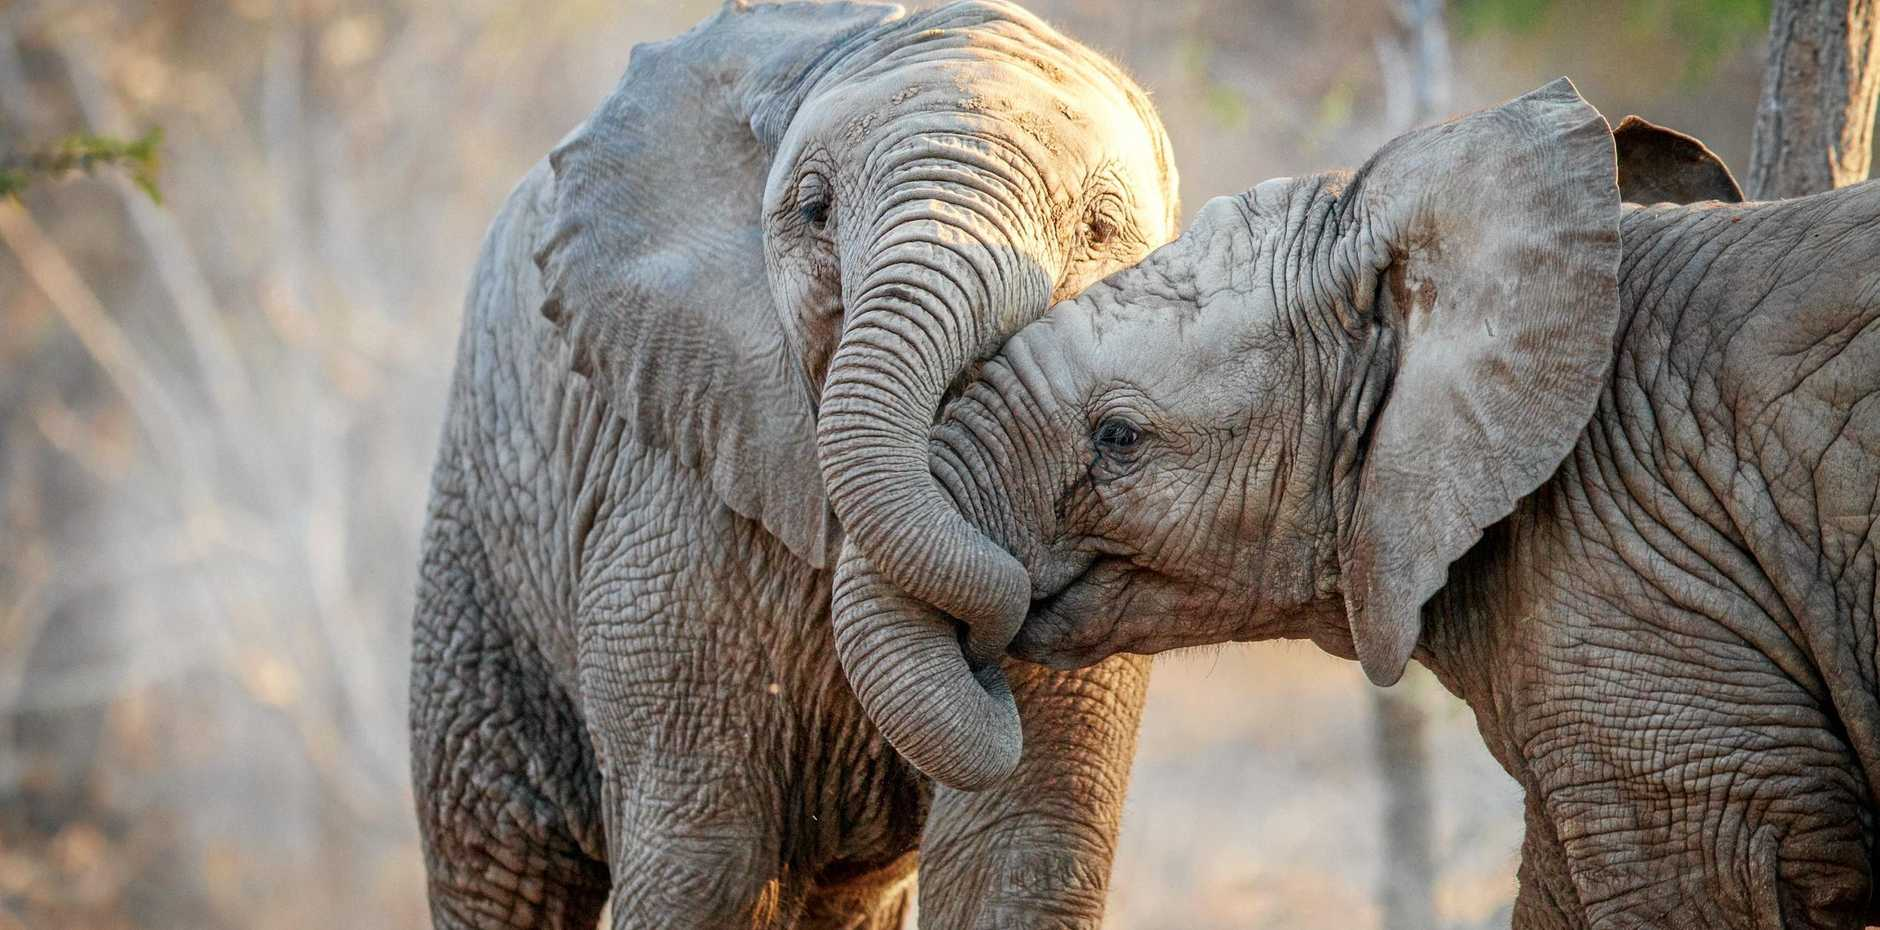 Two Elephants playing in the Kruger National Park, South Africa.